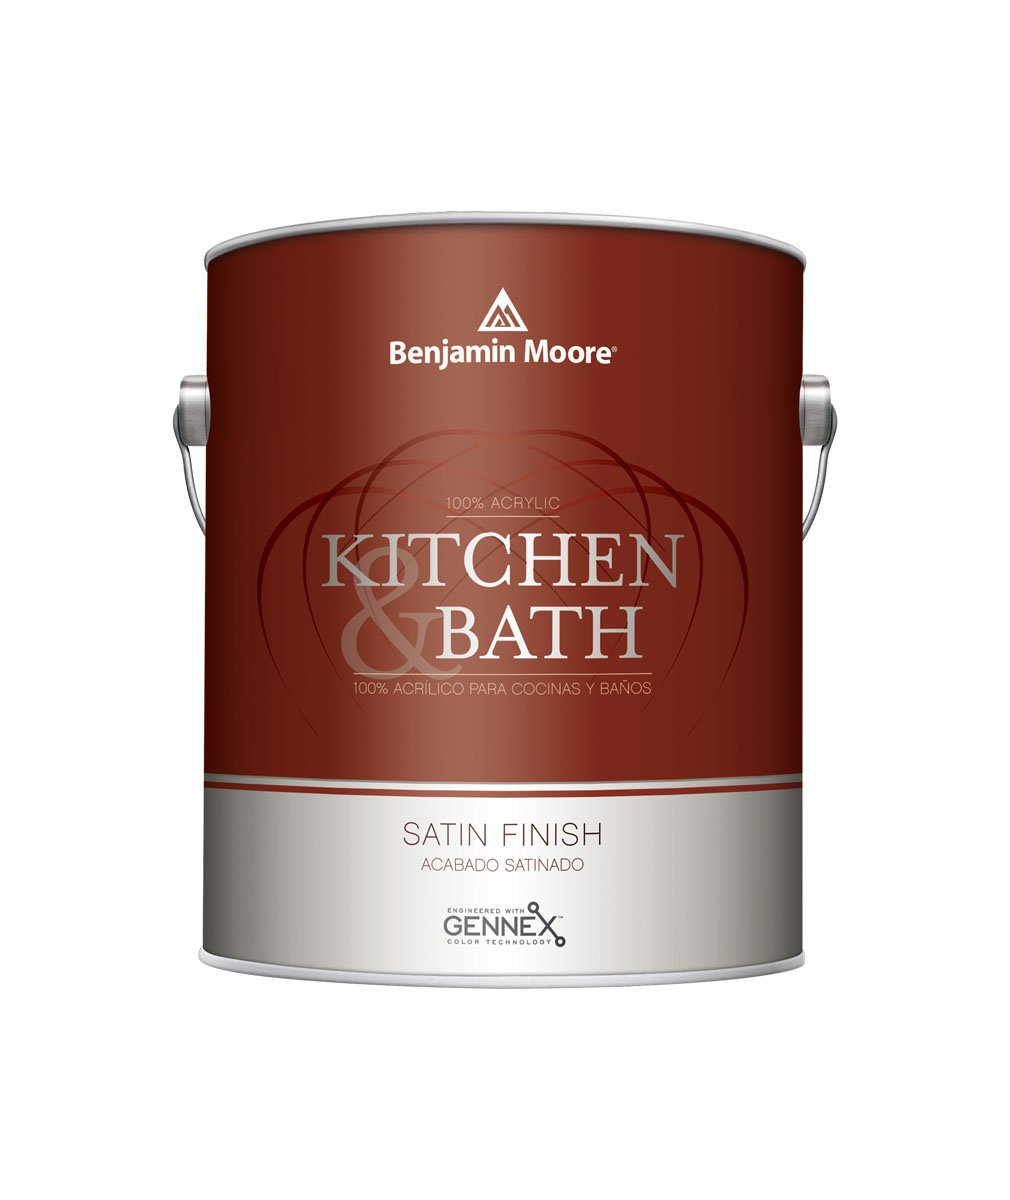 Benjamin Moore Kitchen & Bath interior satin paint, available at Wallauer's in NY.